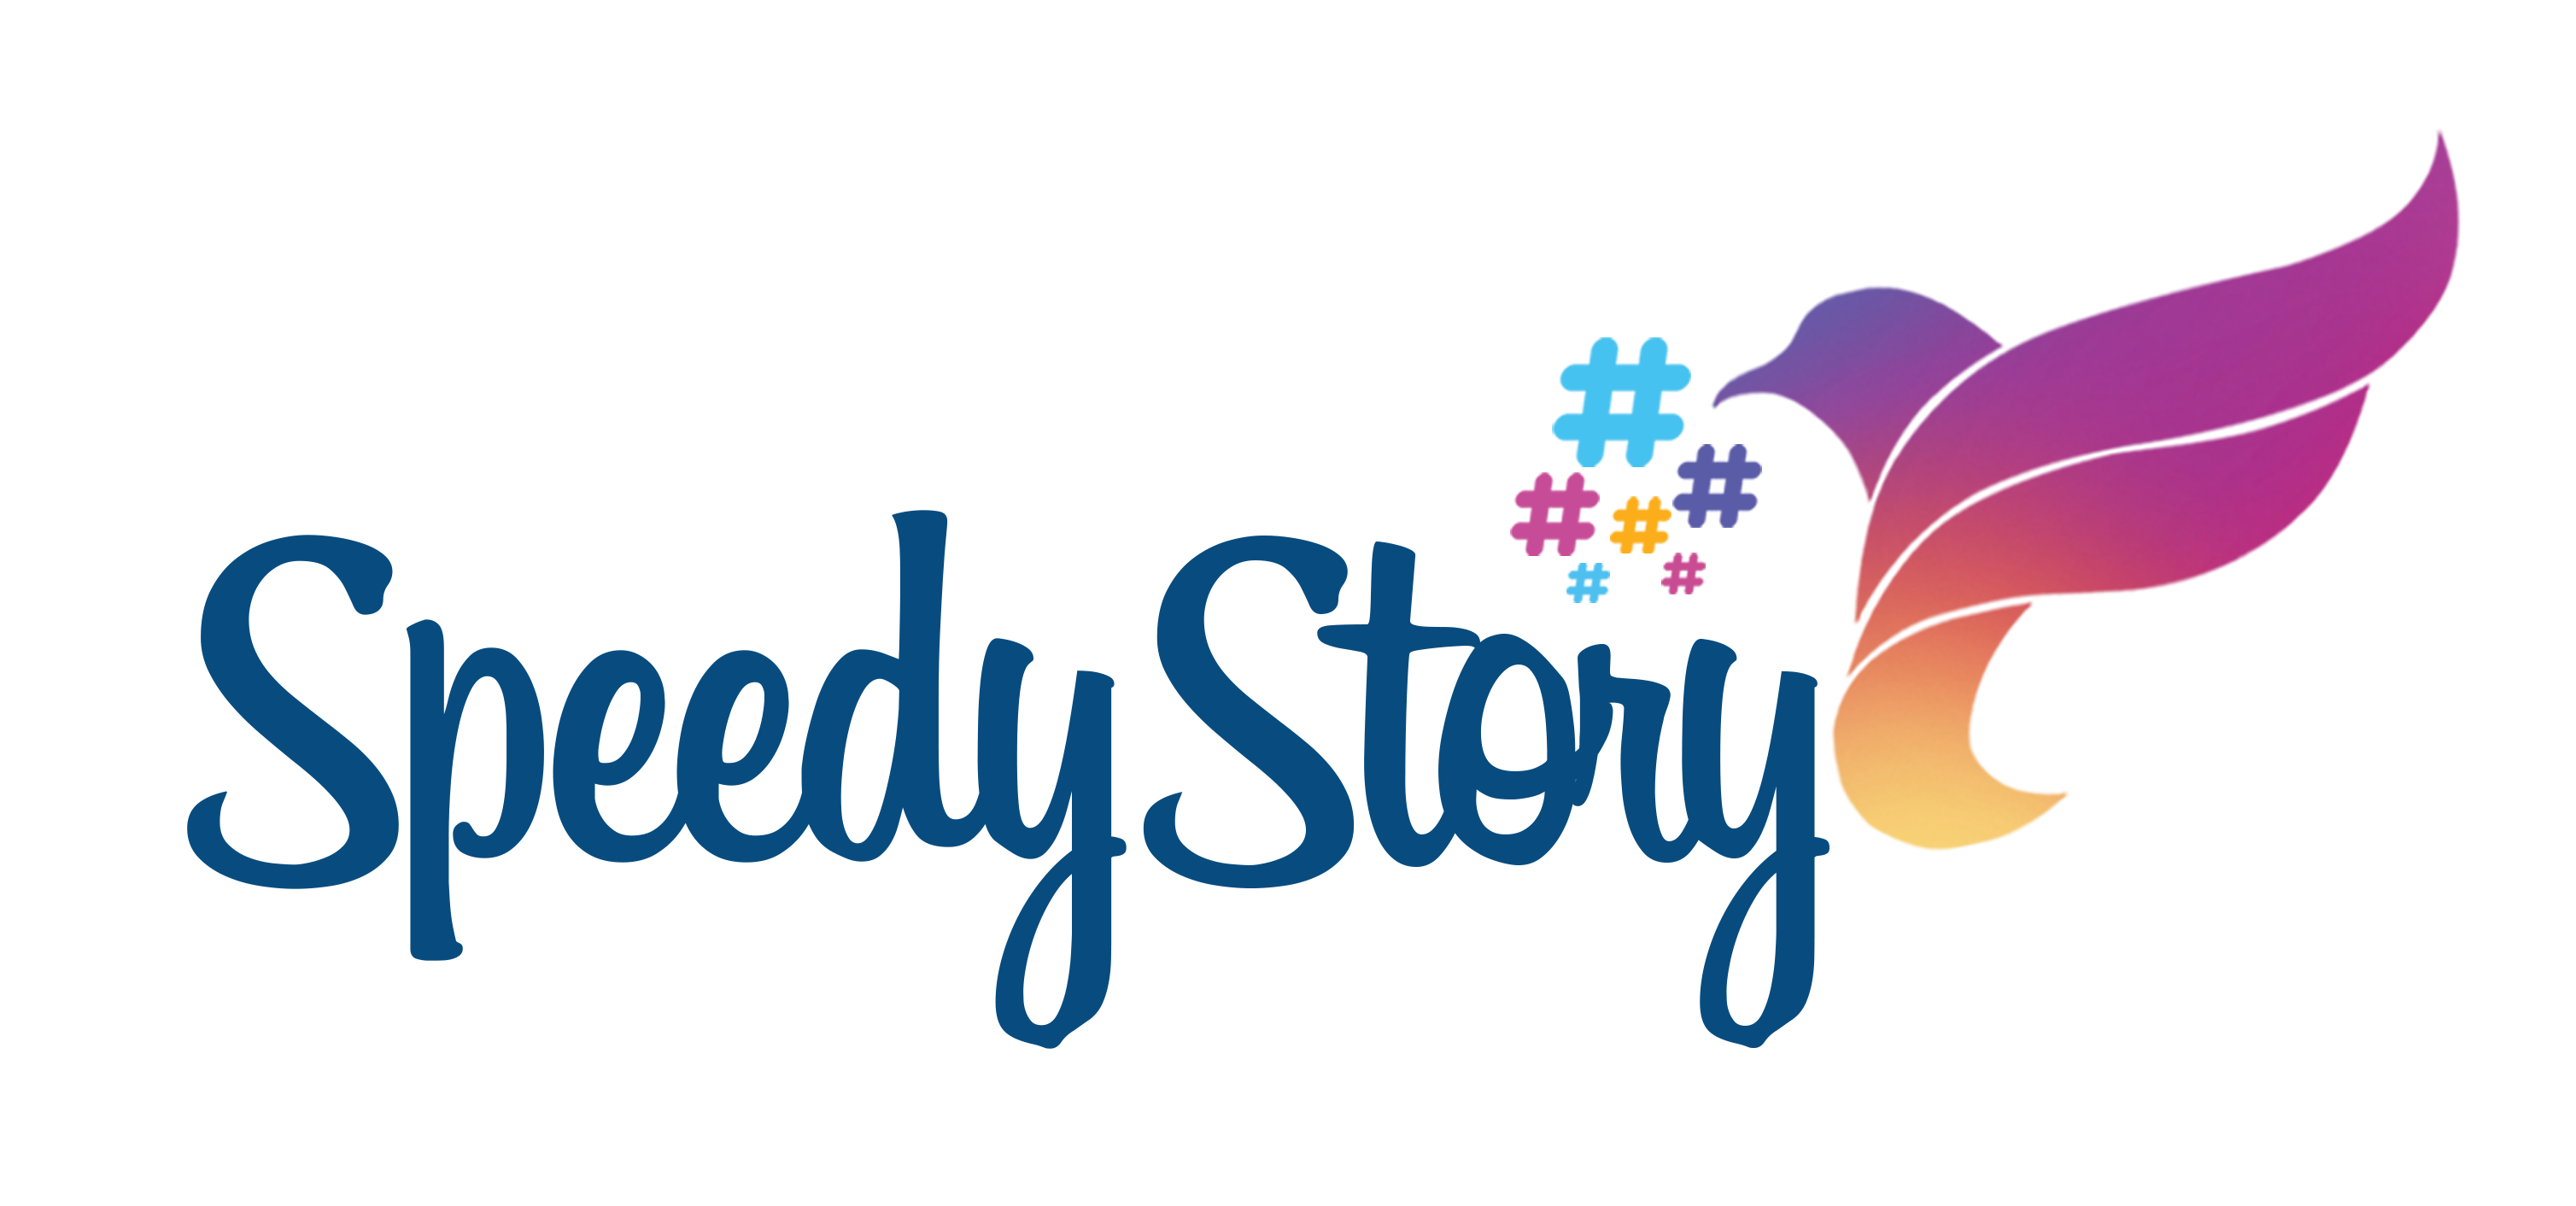 SpeedyStrory Review: Best Way to Gain Instagram Real followers, Increase Engagement, & Make More Sales